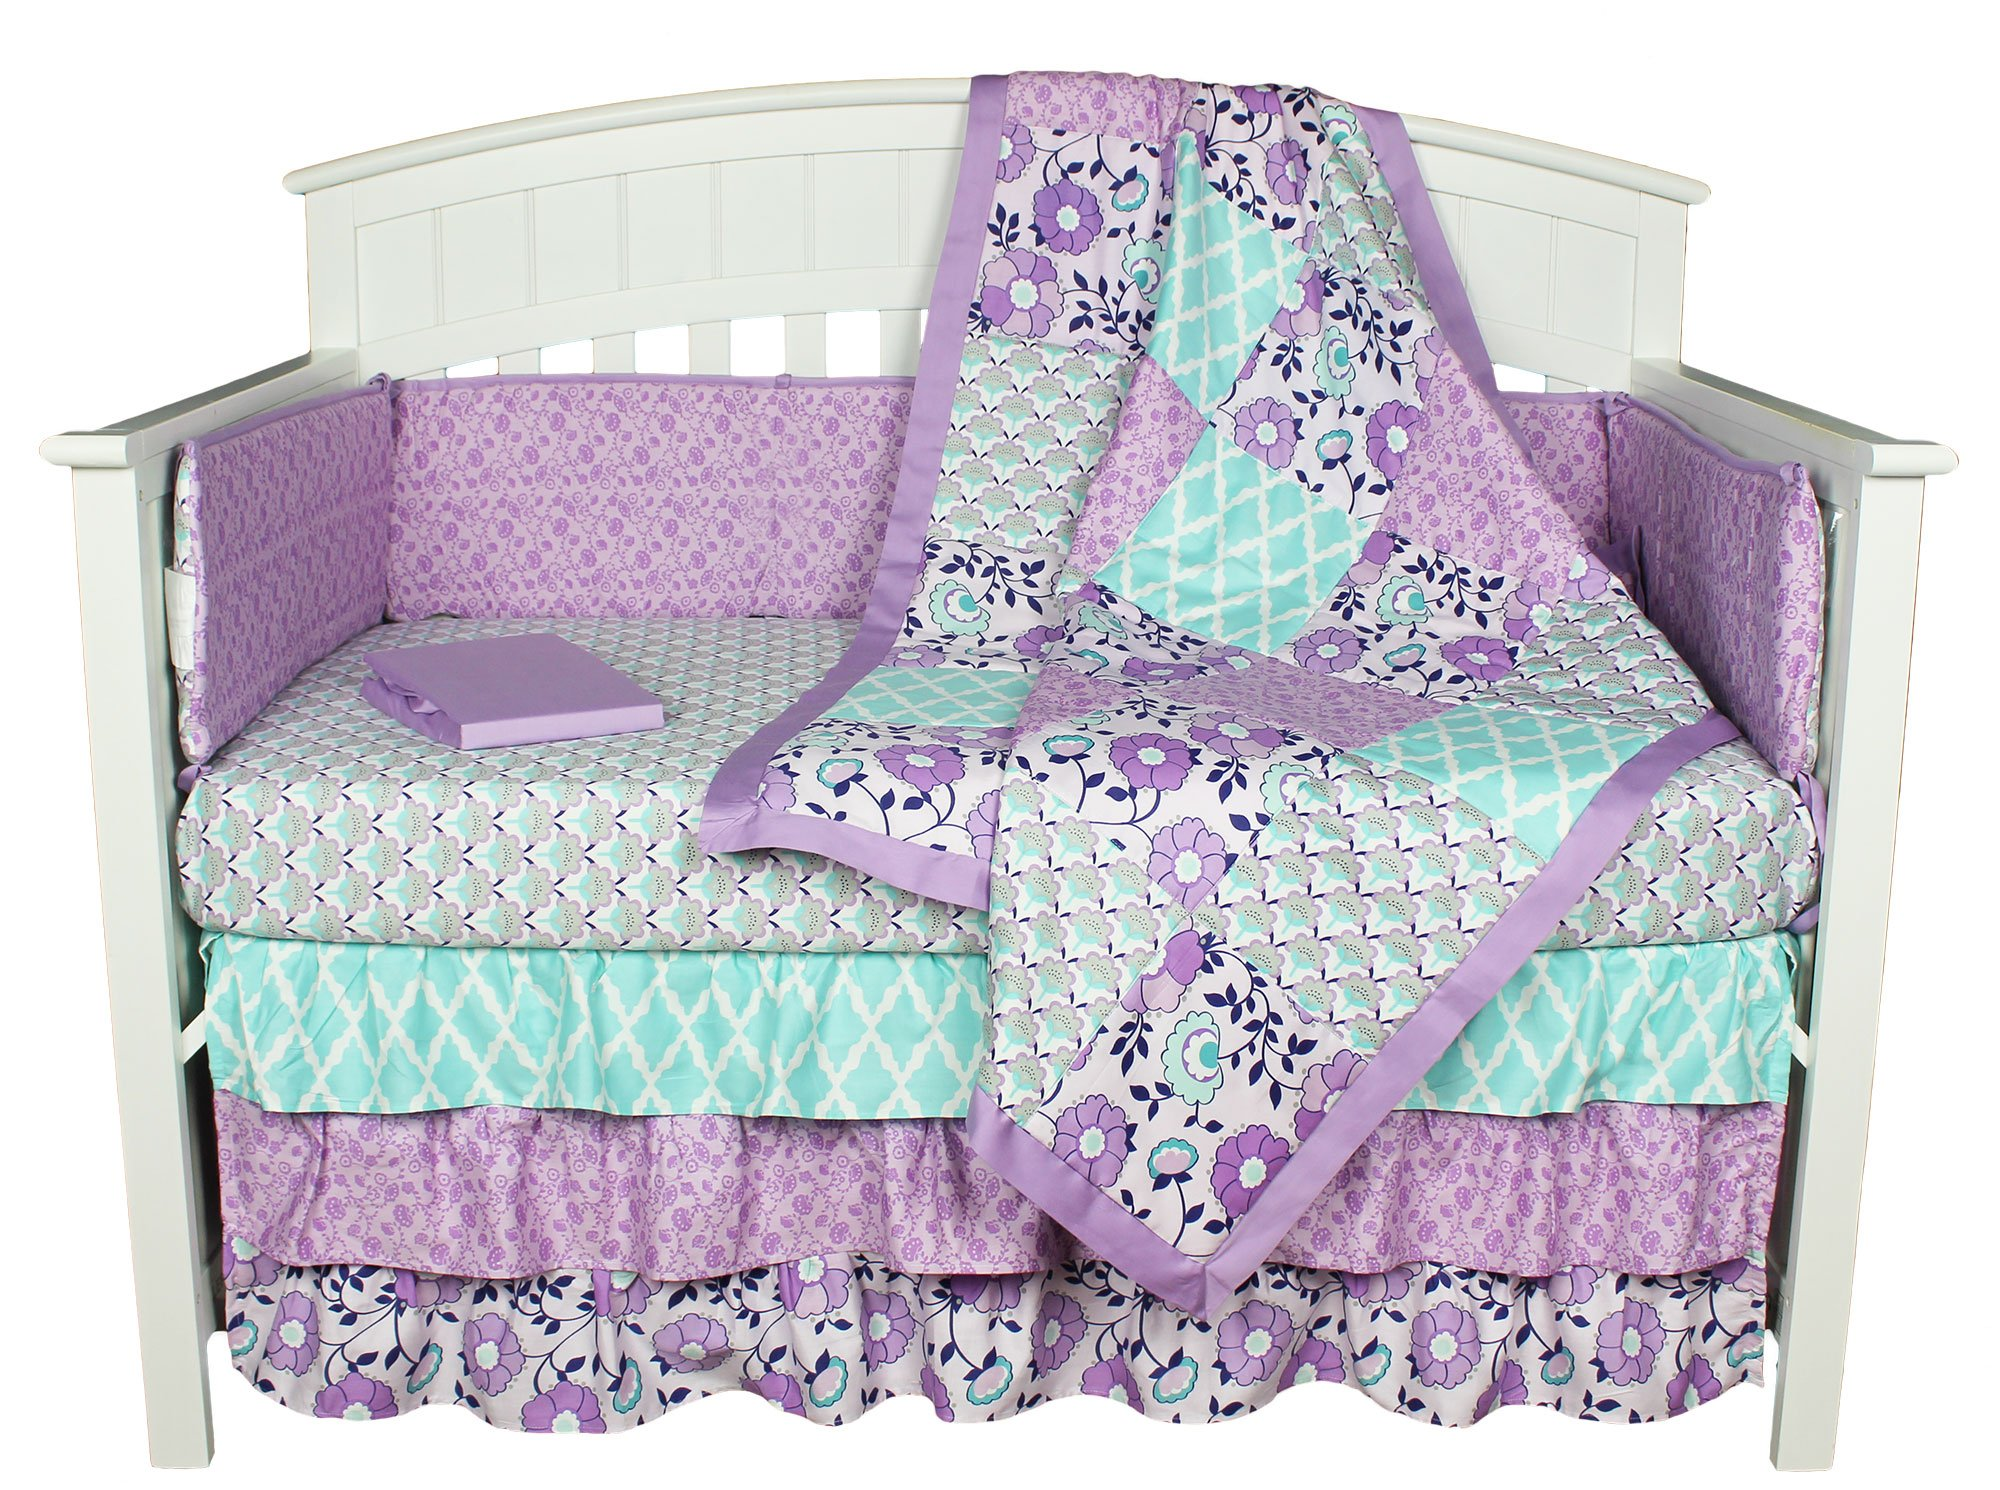 Purple Crib Bedding, Zoe 8-in-1 Floral Patchwork Baby Bedding Set by The Peanut Shell